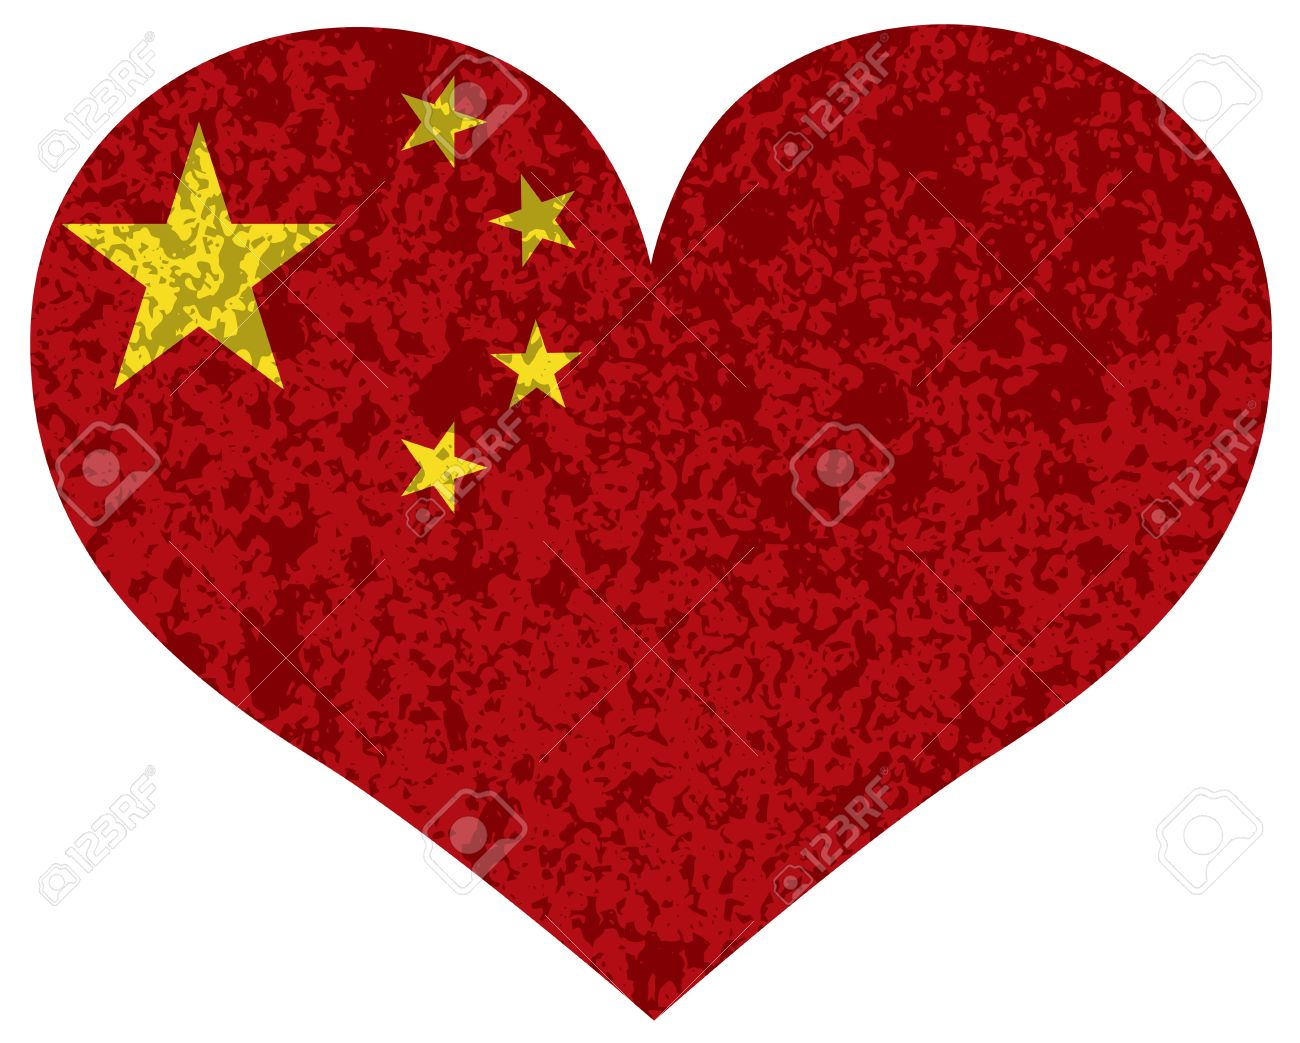 Peoples Republic Of China Flag In Heart Shape Silhouette Textured.